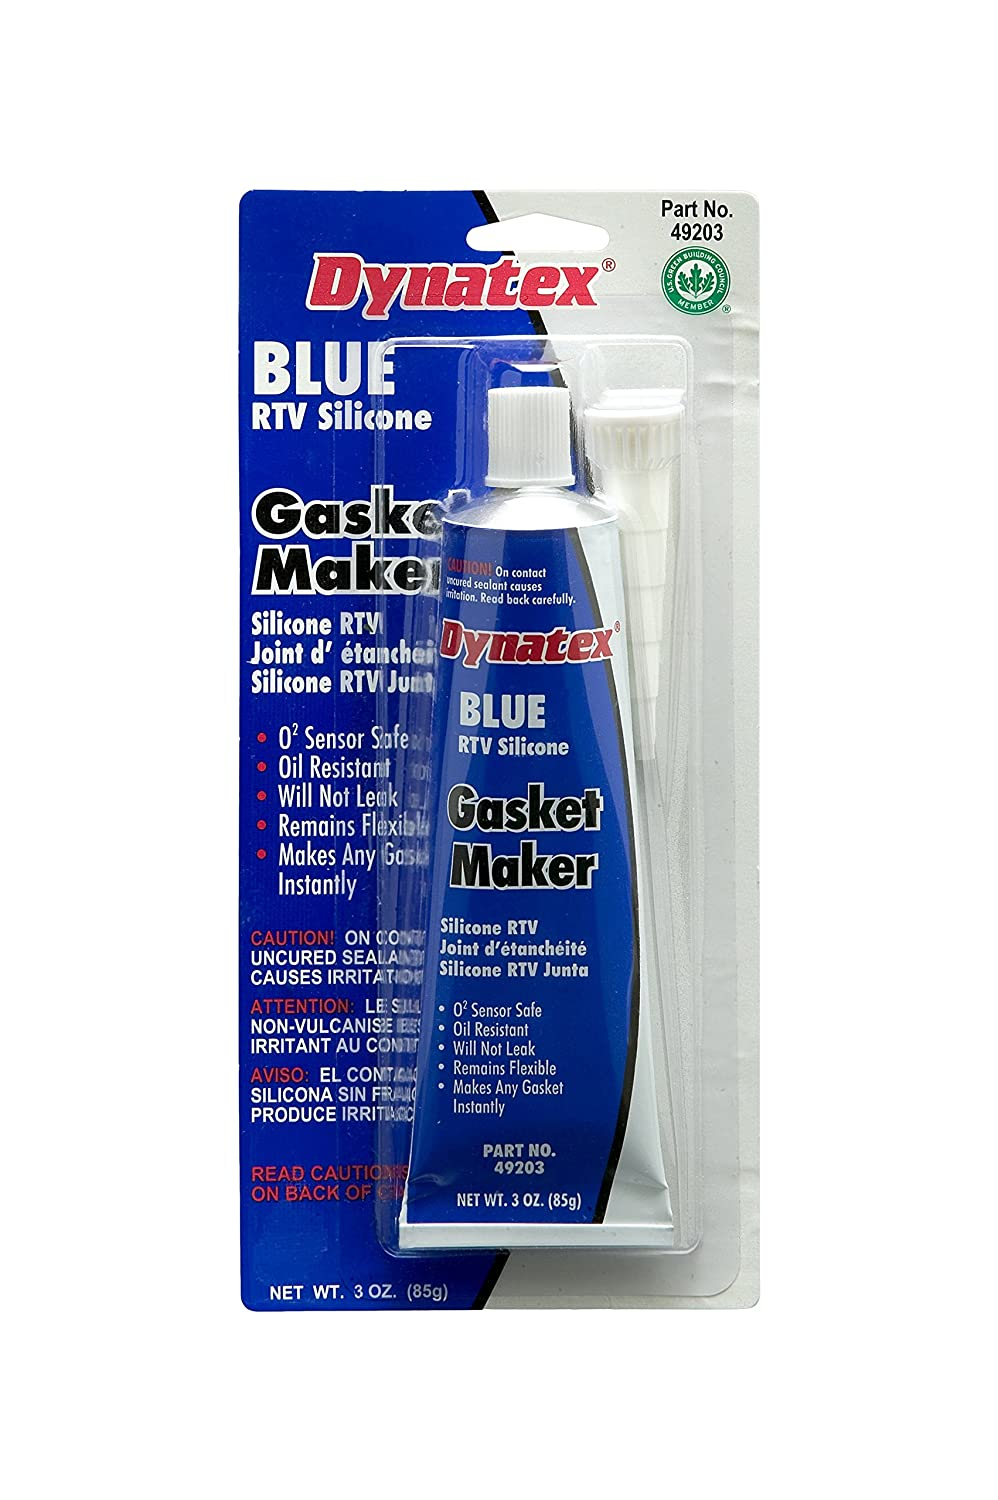 Dynatex 49203 Low Volatile RTV Selling rankings Silicone store Maker D 500 Gasket 0 to